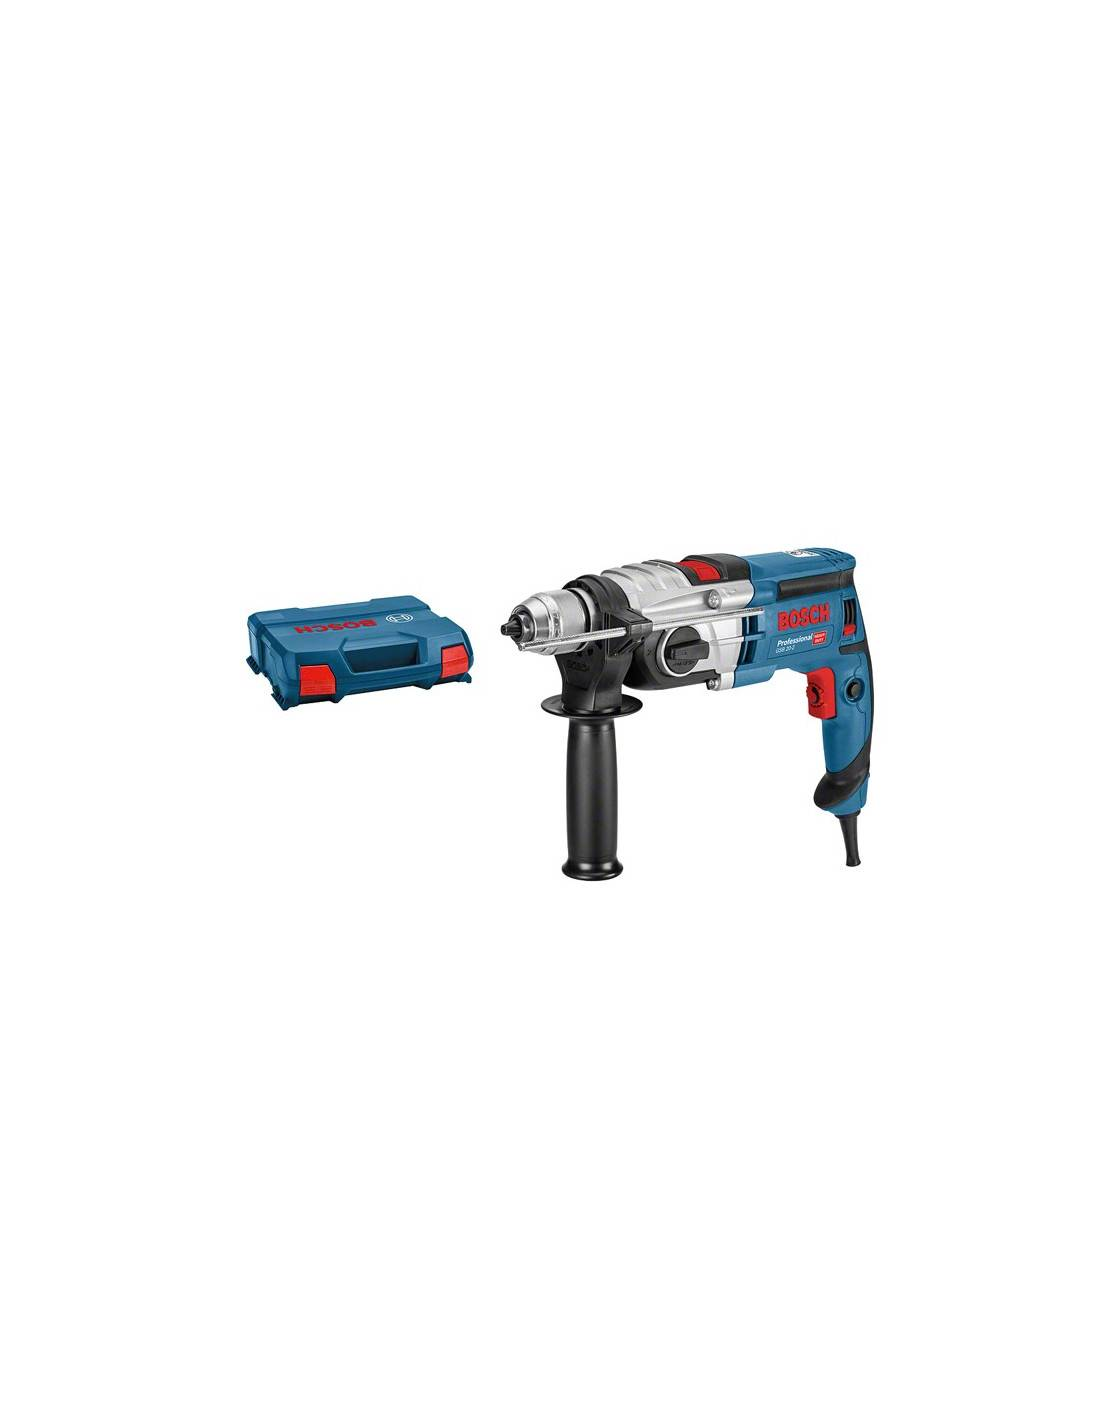 Perceuse à percussion GSB 20-2 850W en coffret L-CASE - BOSCH - 060117B400